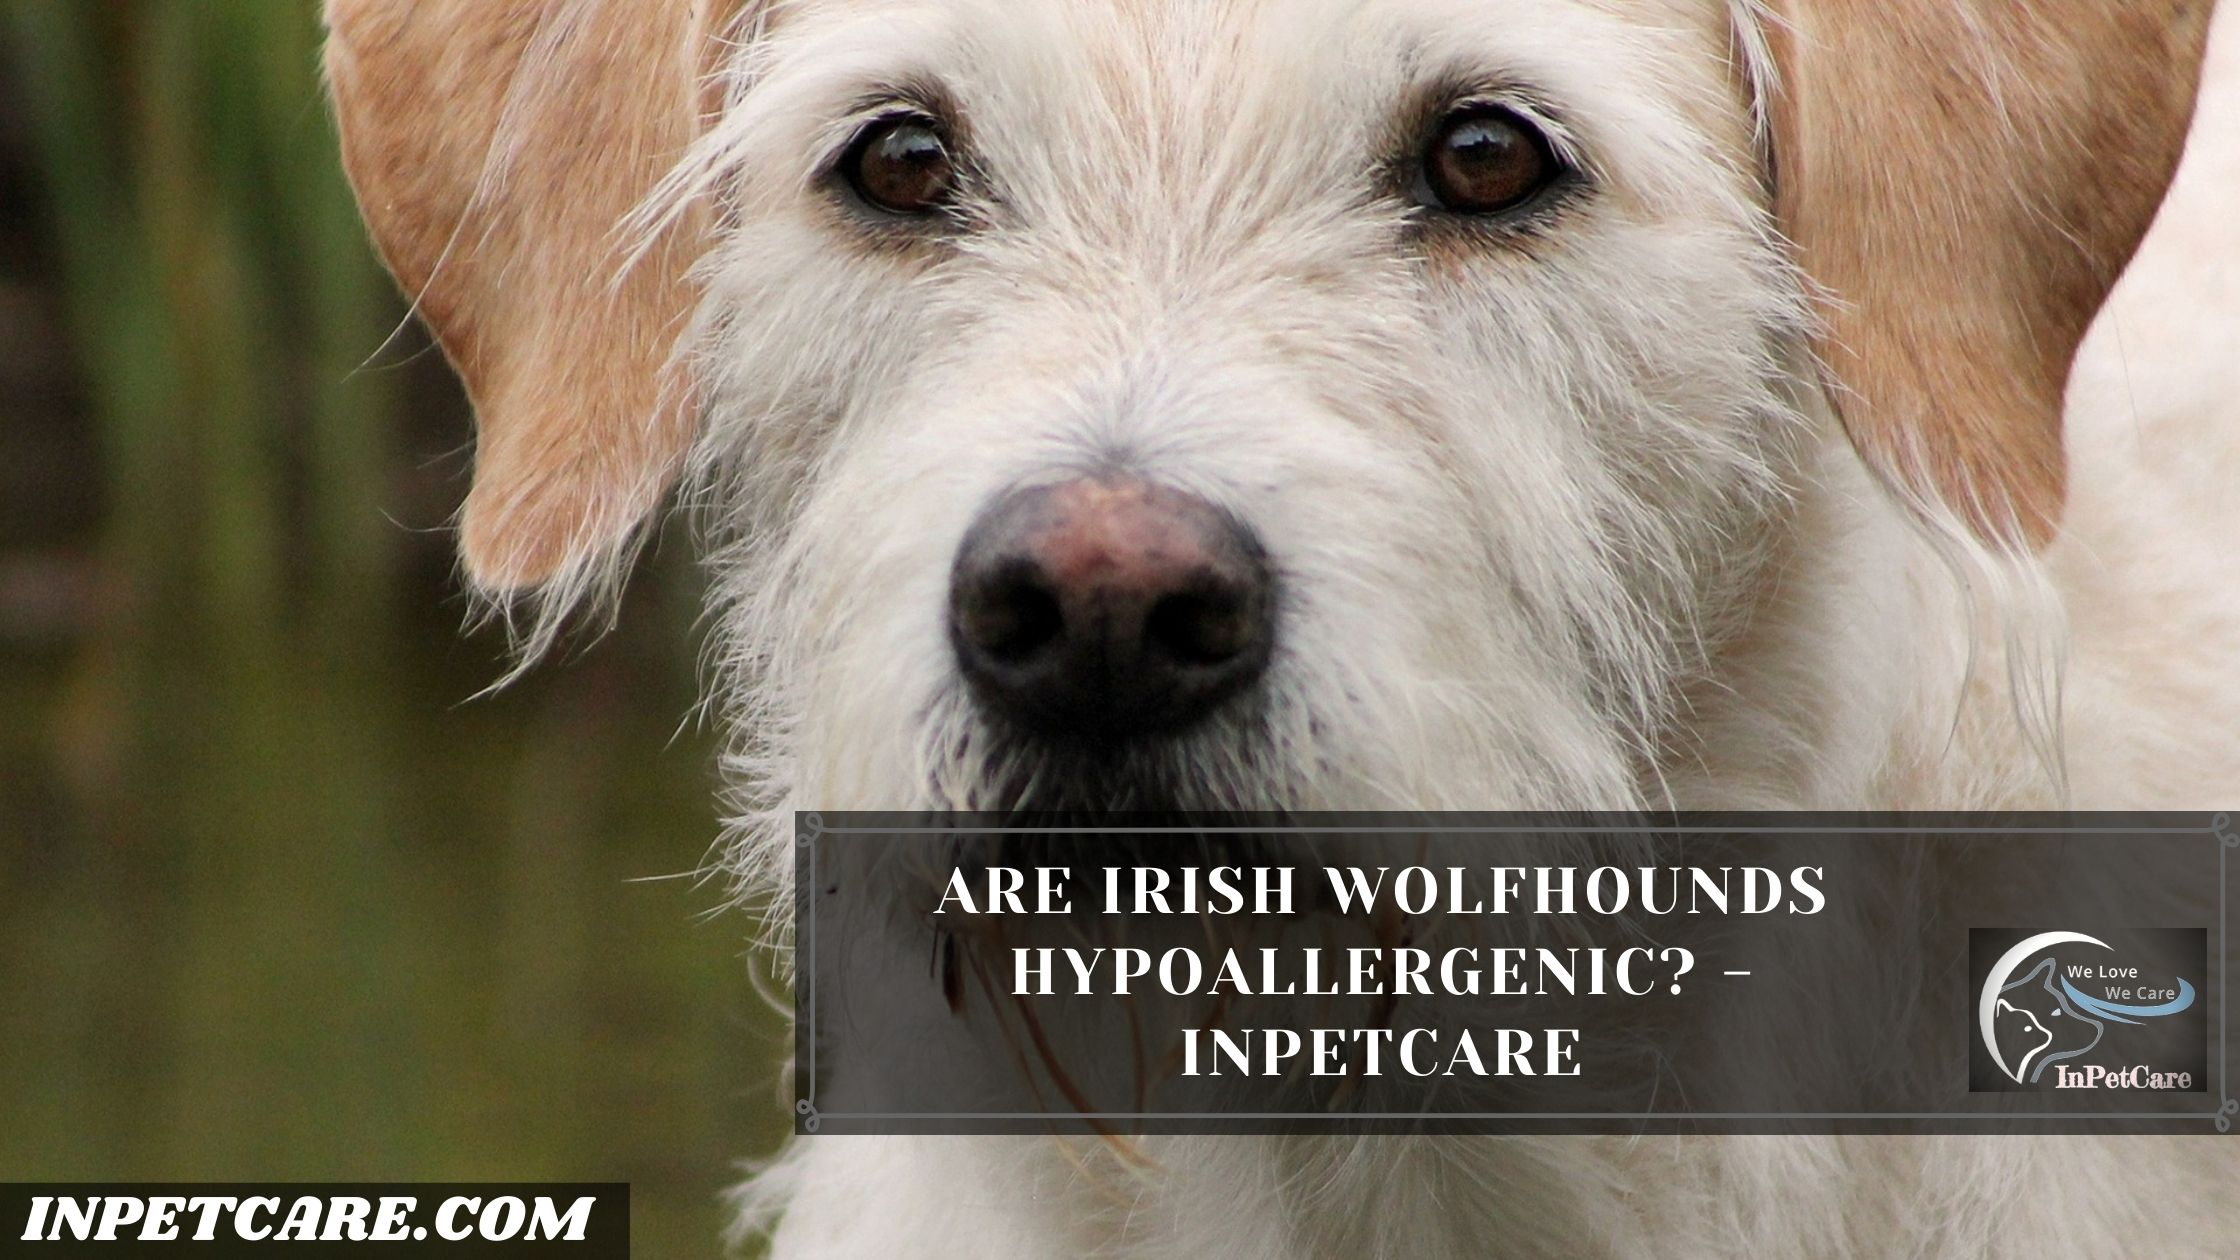 Are Irish Wolfhounds Hypoallergenic?